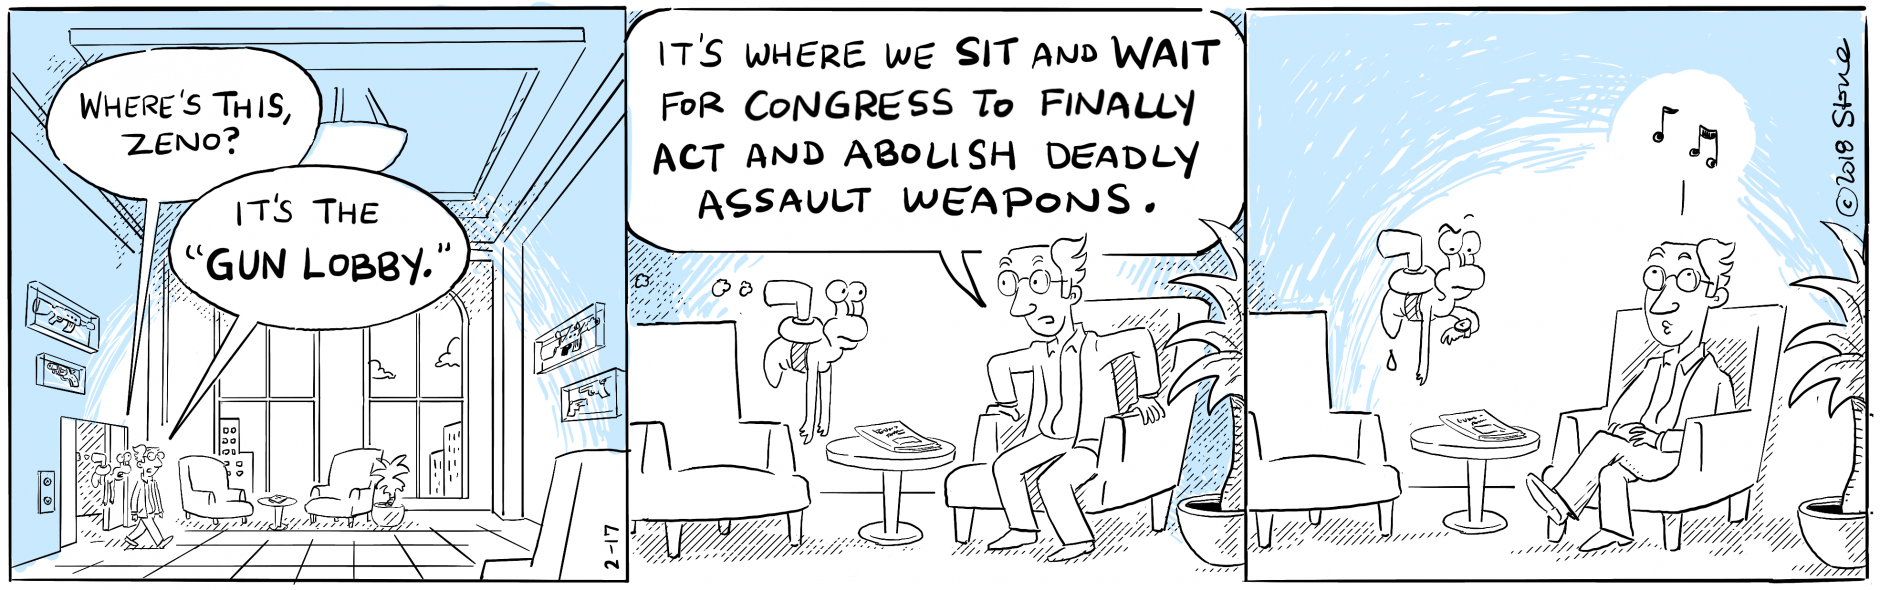 "Zeno and U-Gene kick back in the ""Gun Lobby."" @NRA #GunControlNow"